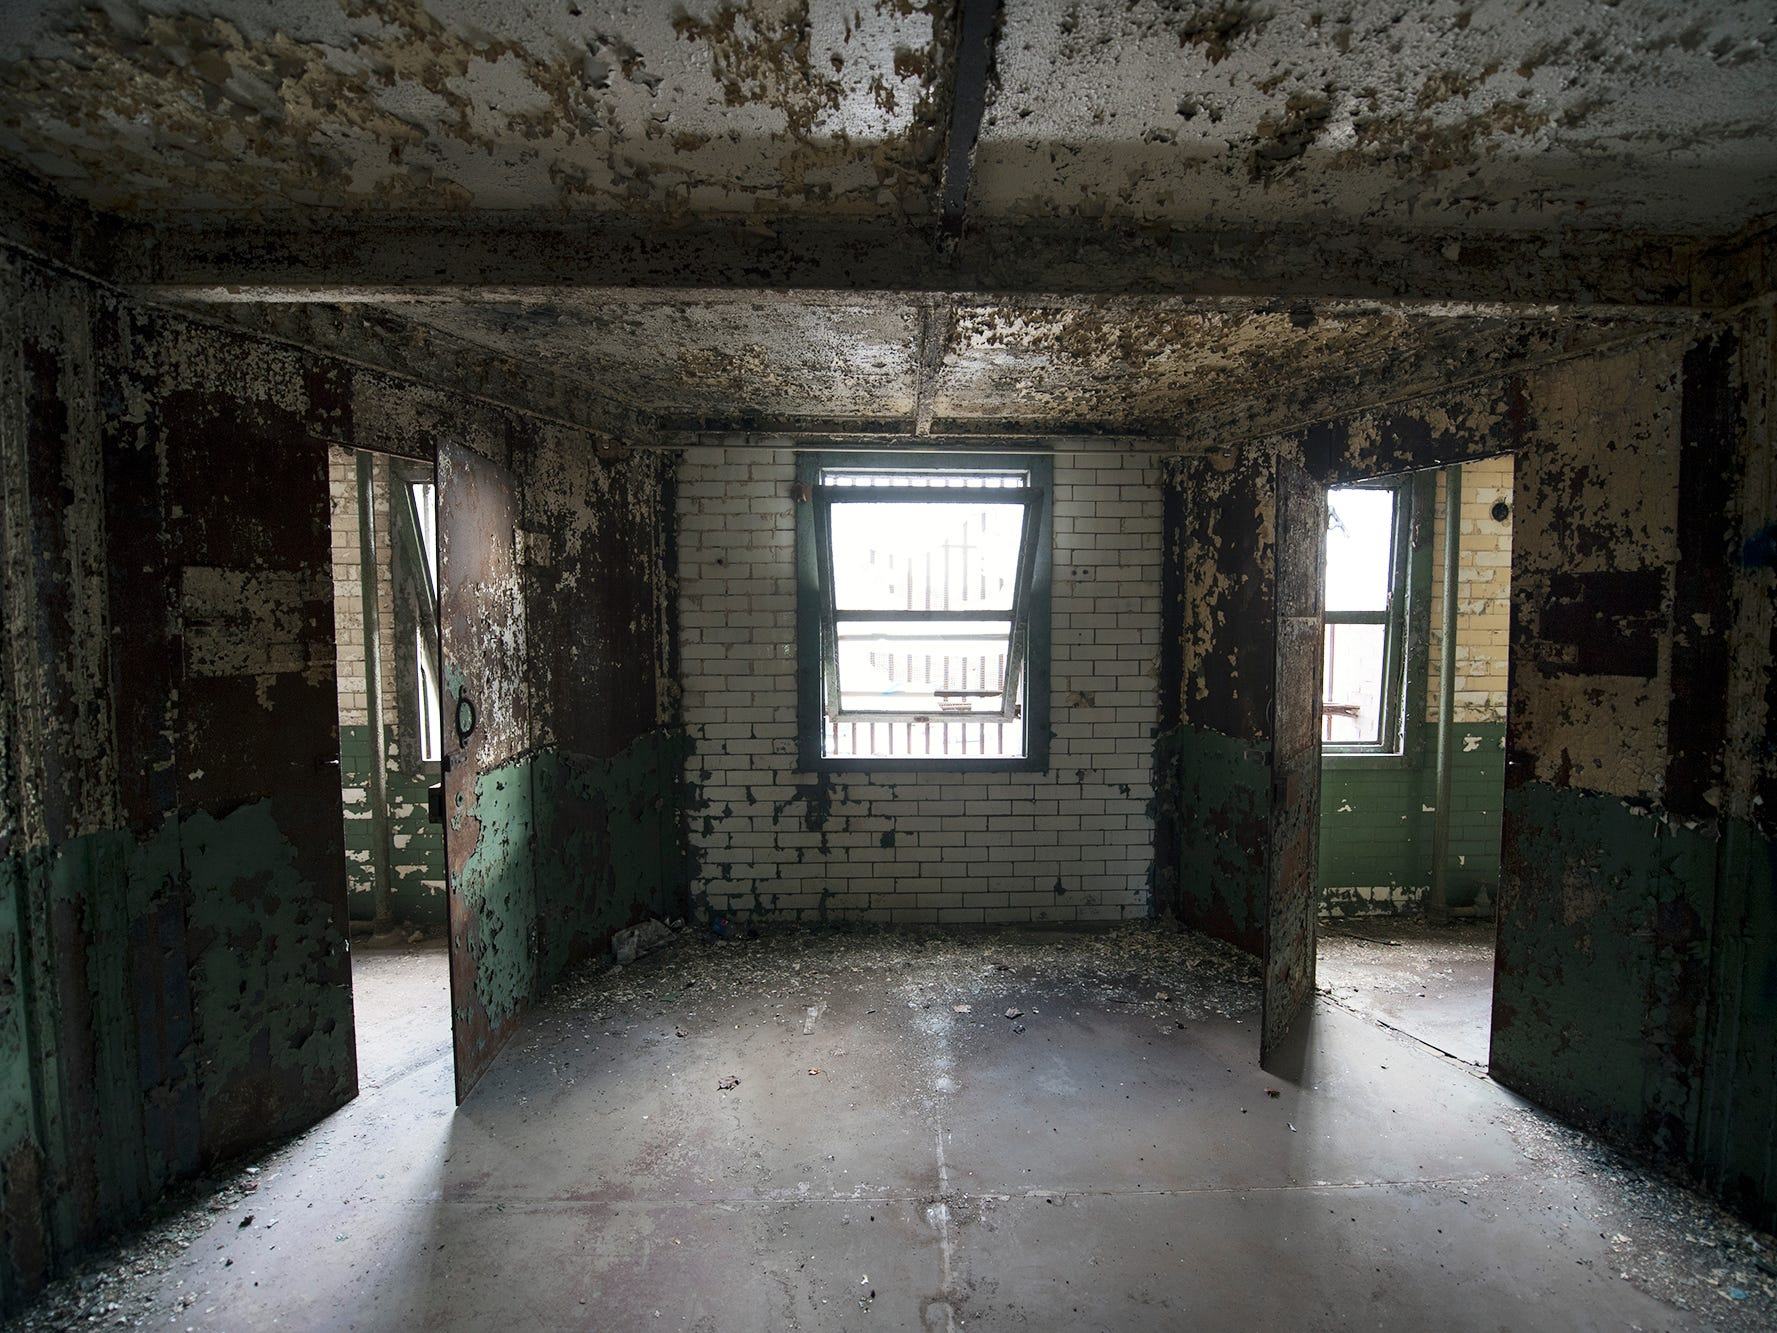 This is a hallway between two banks of prison cells inside the old York County Prison.